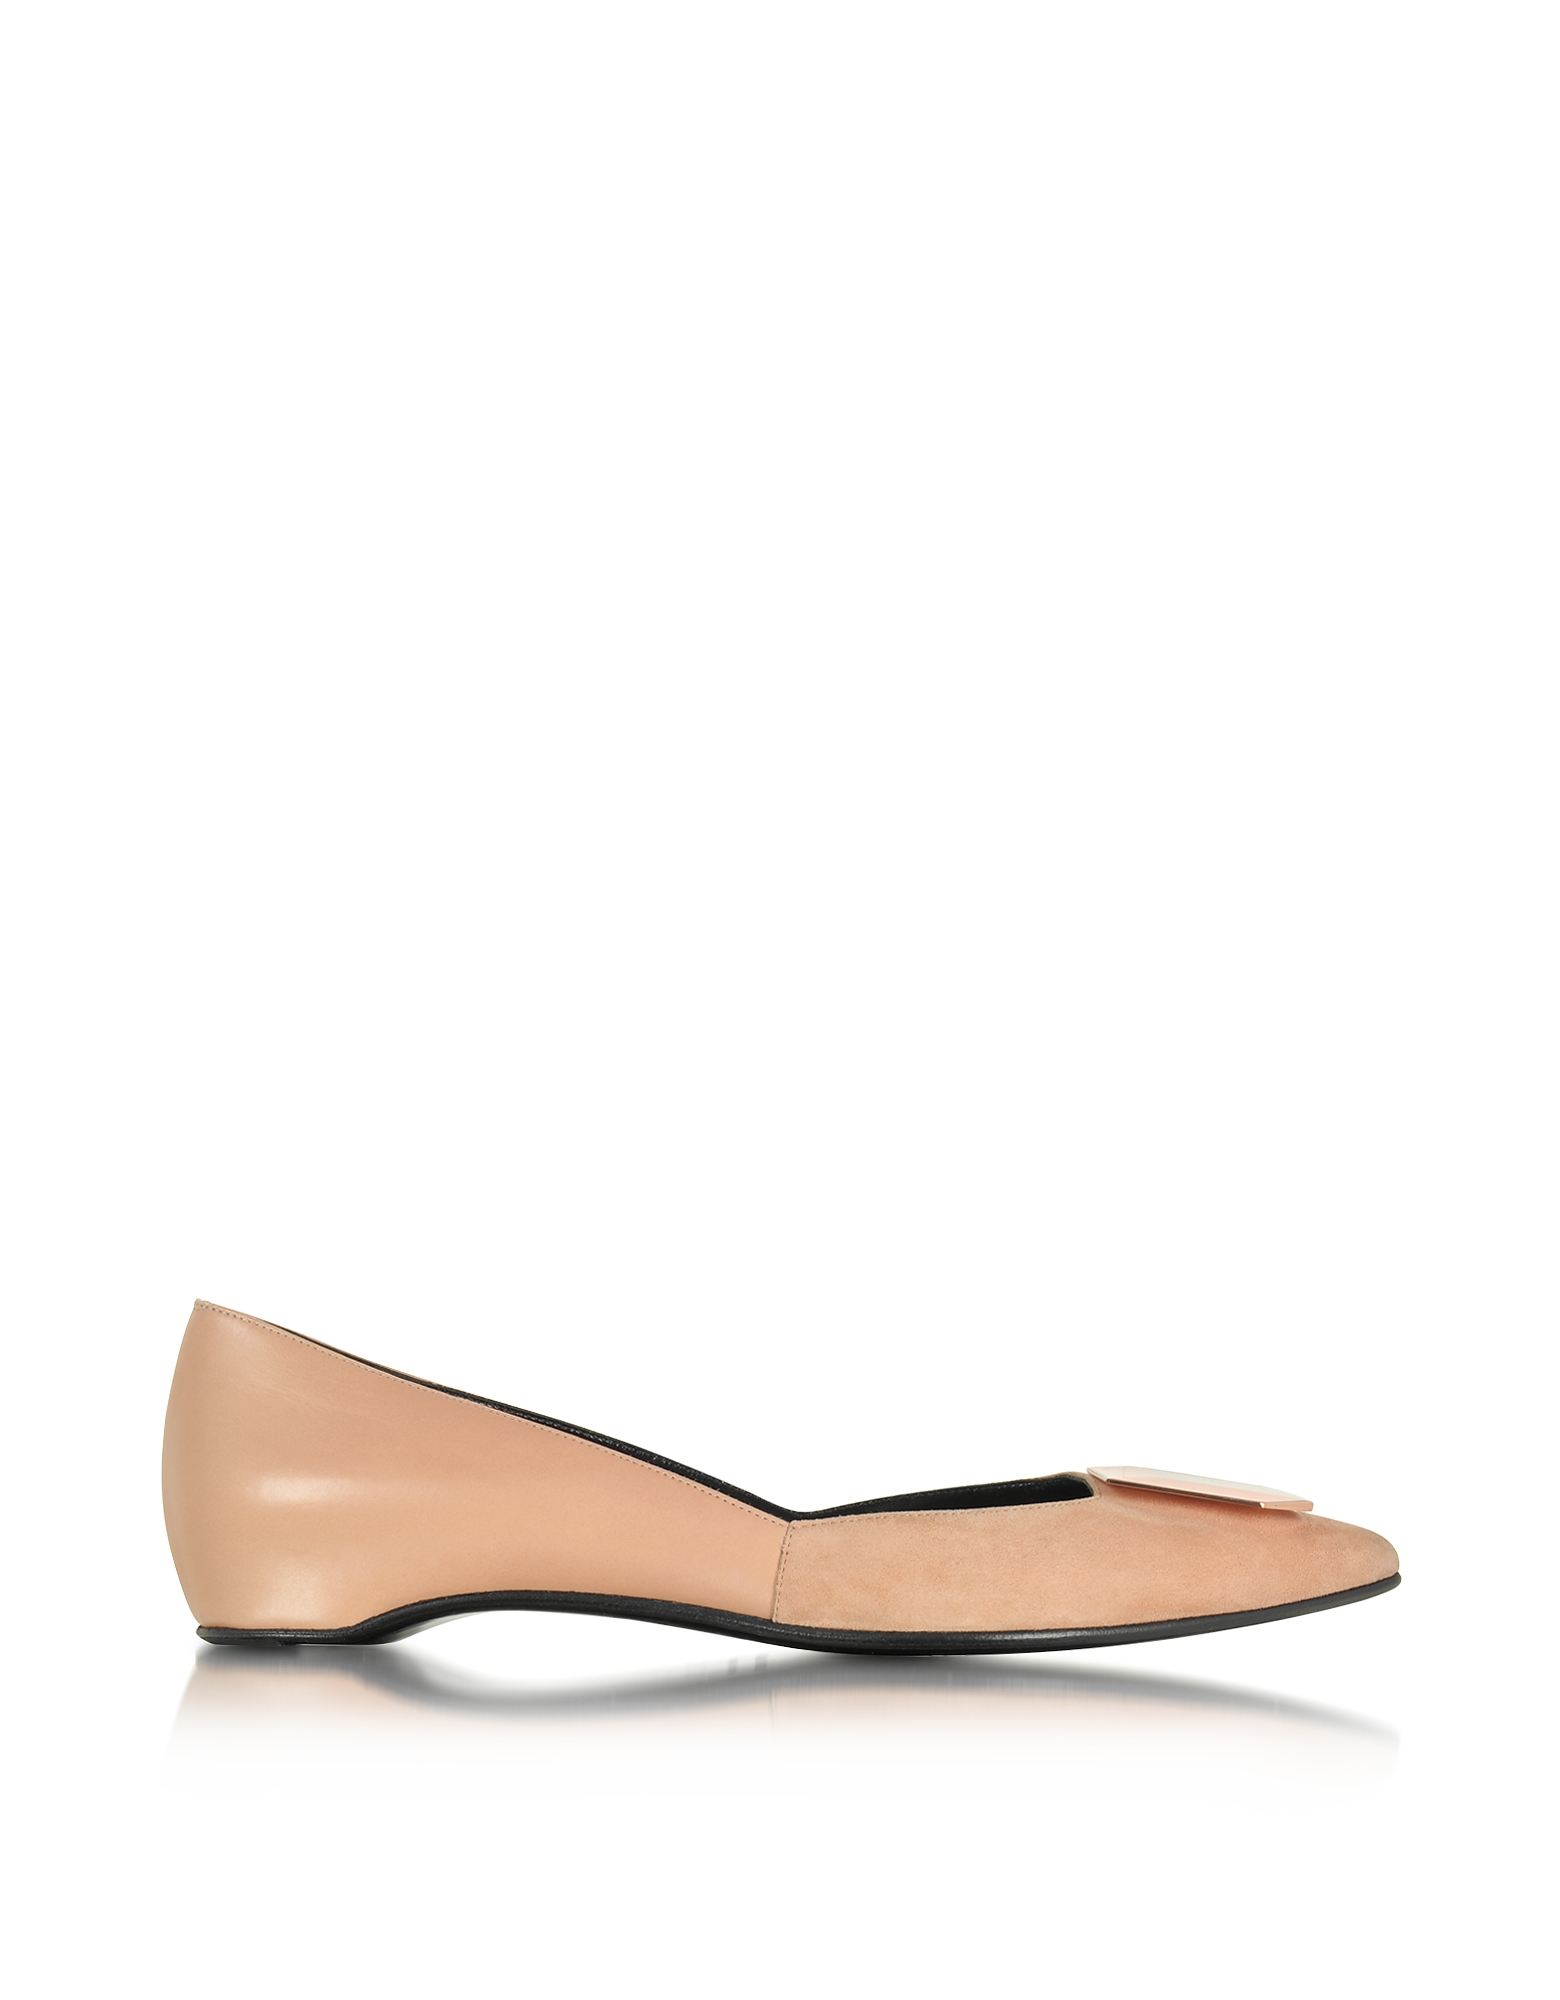 Pierre Hardy Shoes, De D'or Nude Suede and Leather Ballet Flat